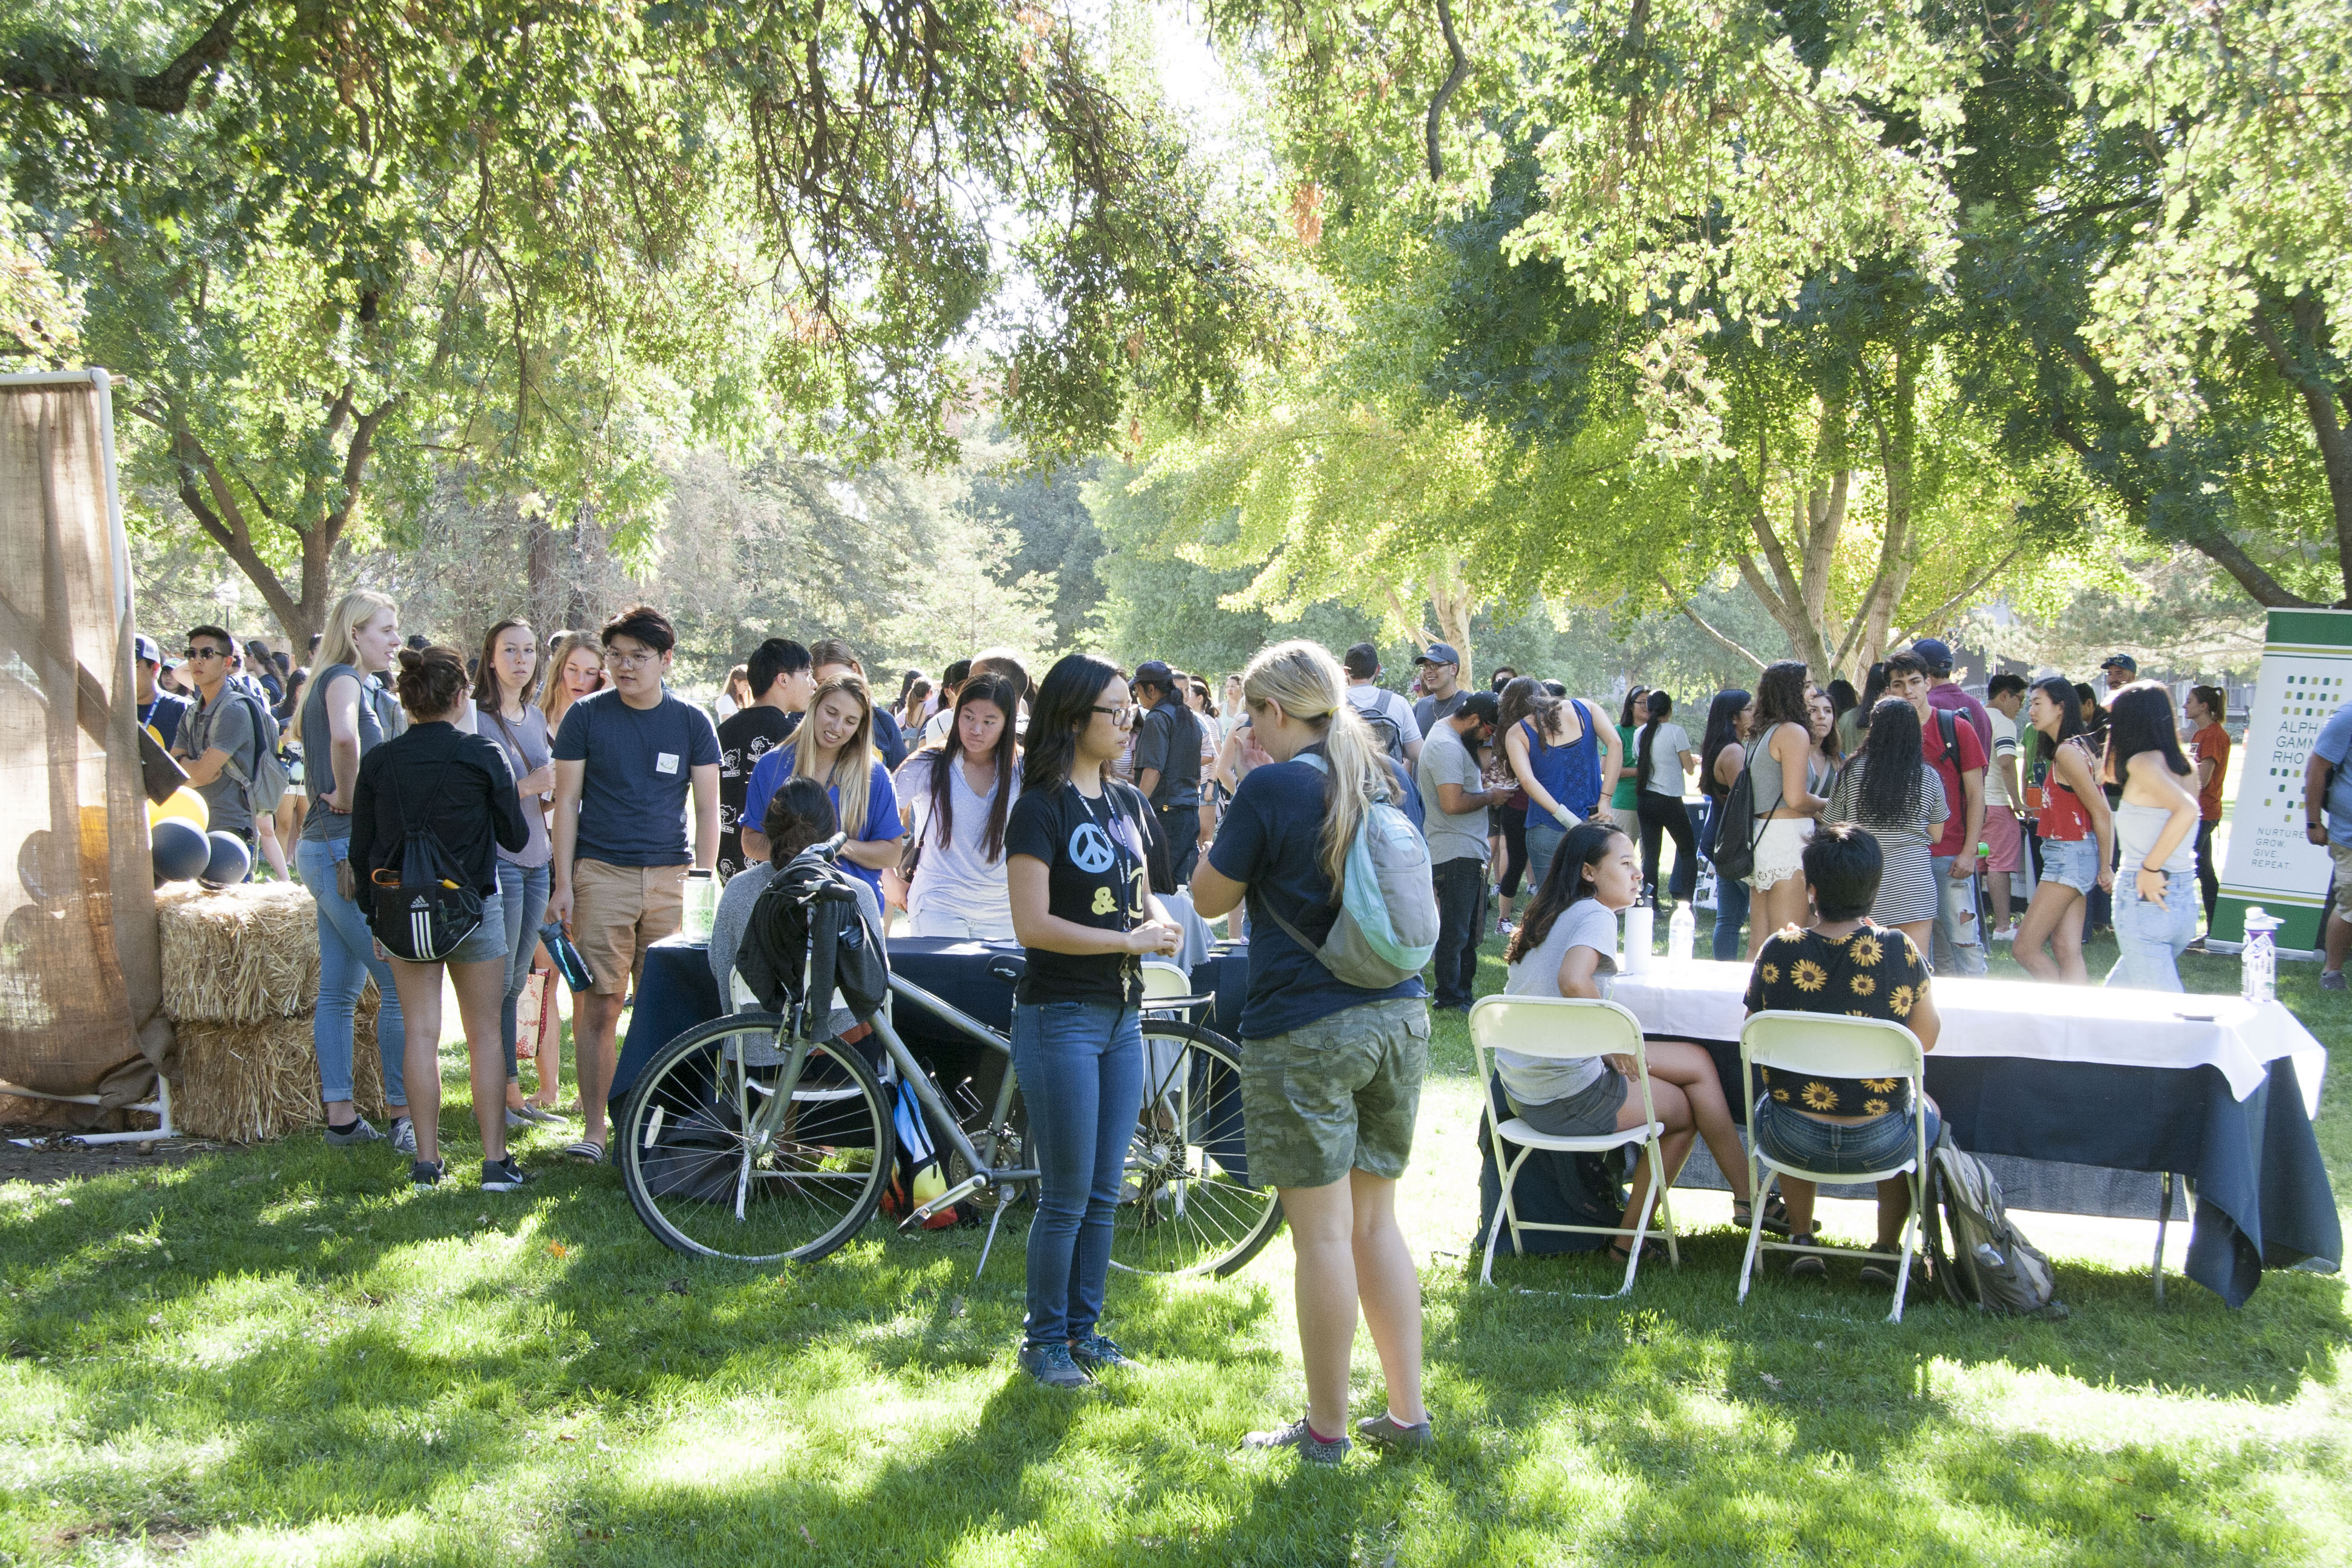 Events sponsored by the college, such as the annual ice cream social, help build a sense of community for our students.